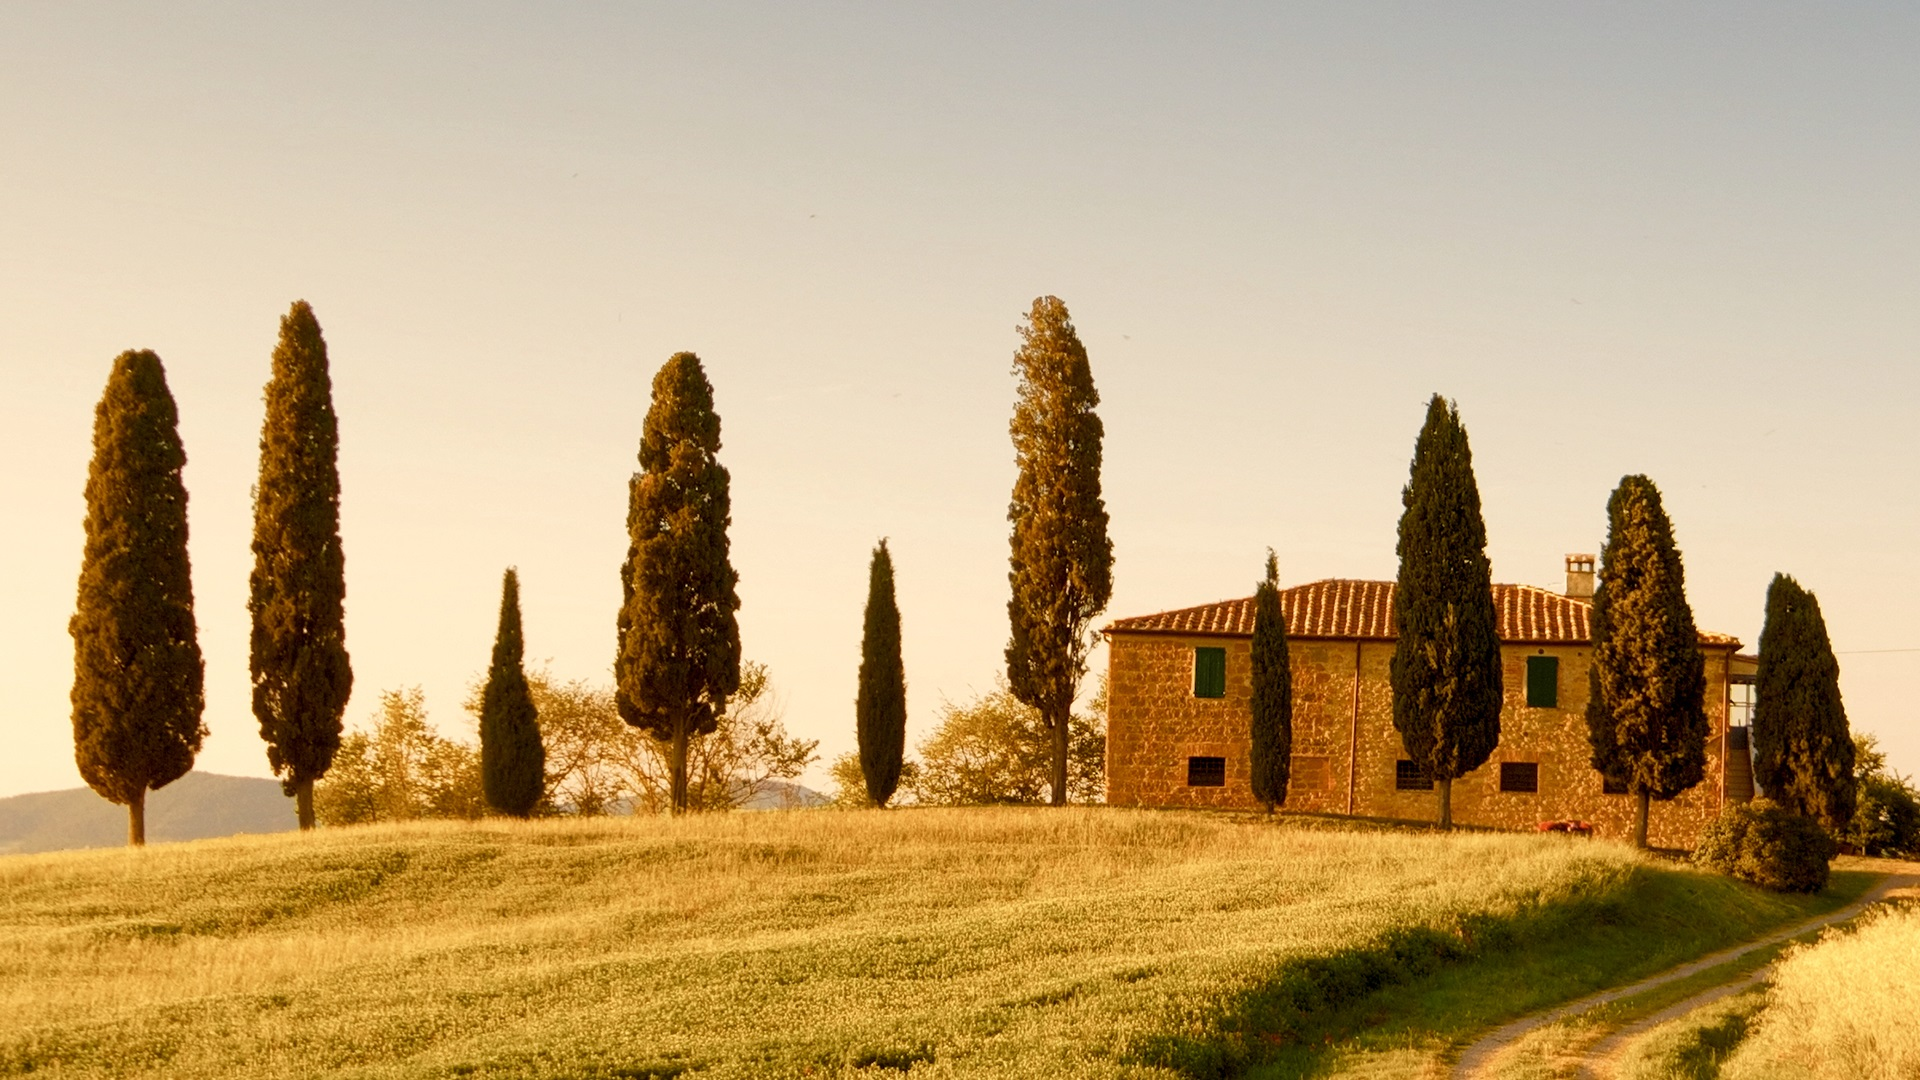 Explore the rustic hilltop town-Pienza engraved in the Italian cypress trees